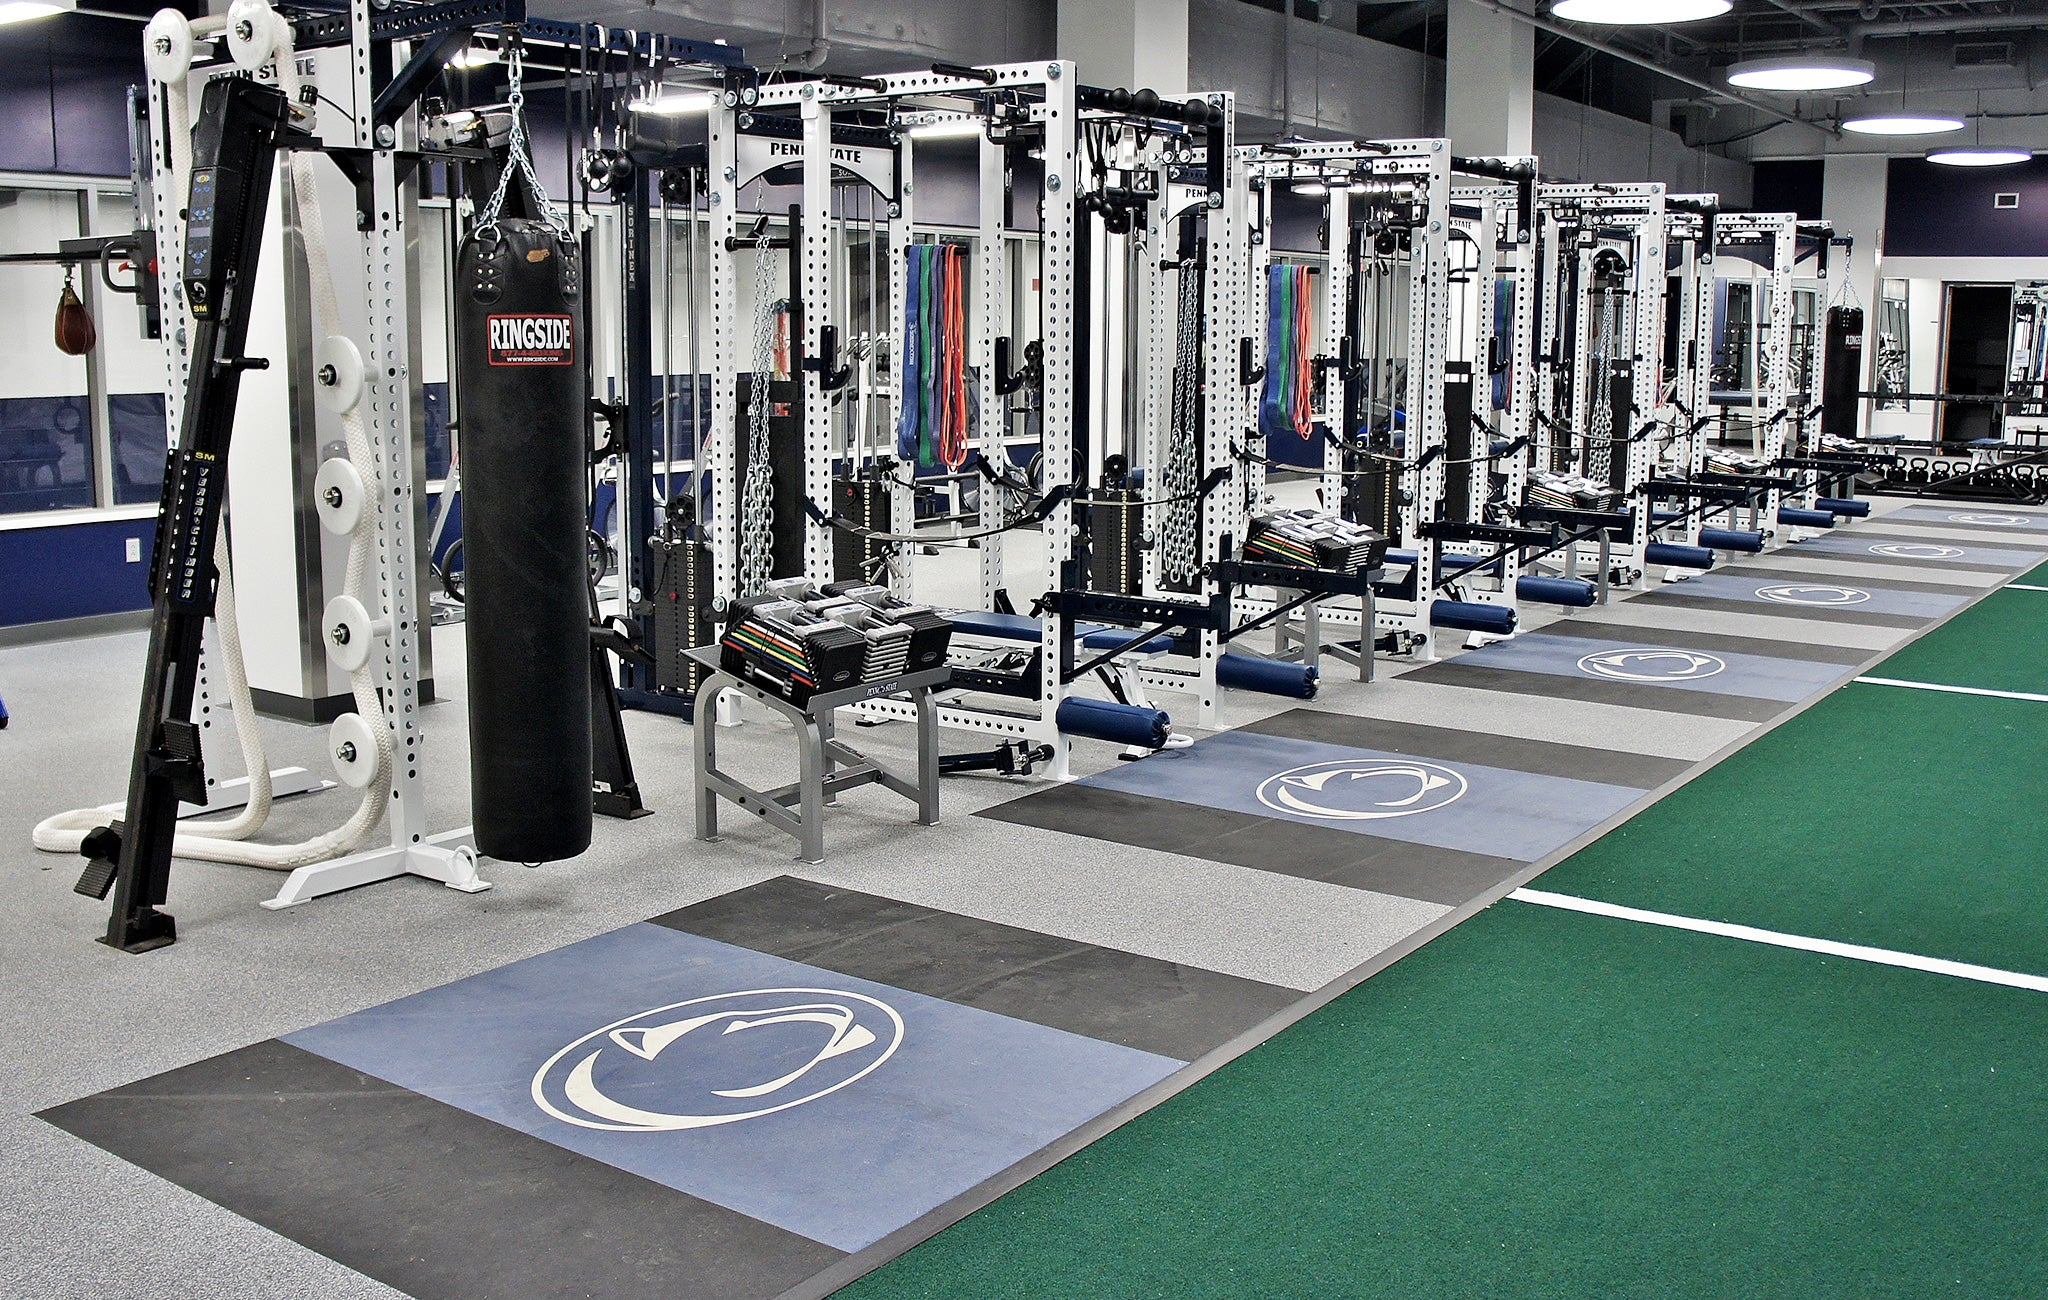 Penn State Hockey Weight Room